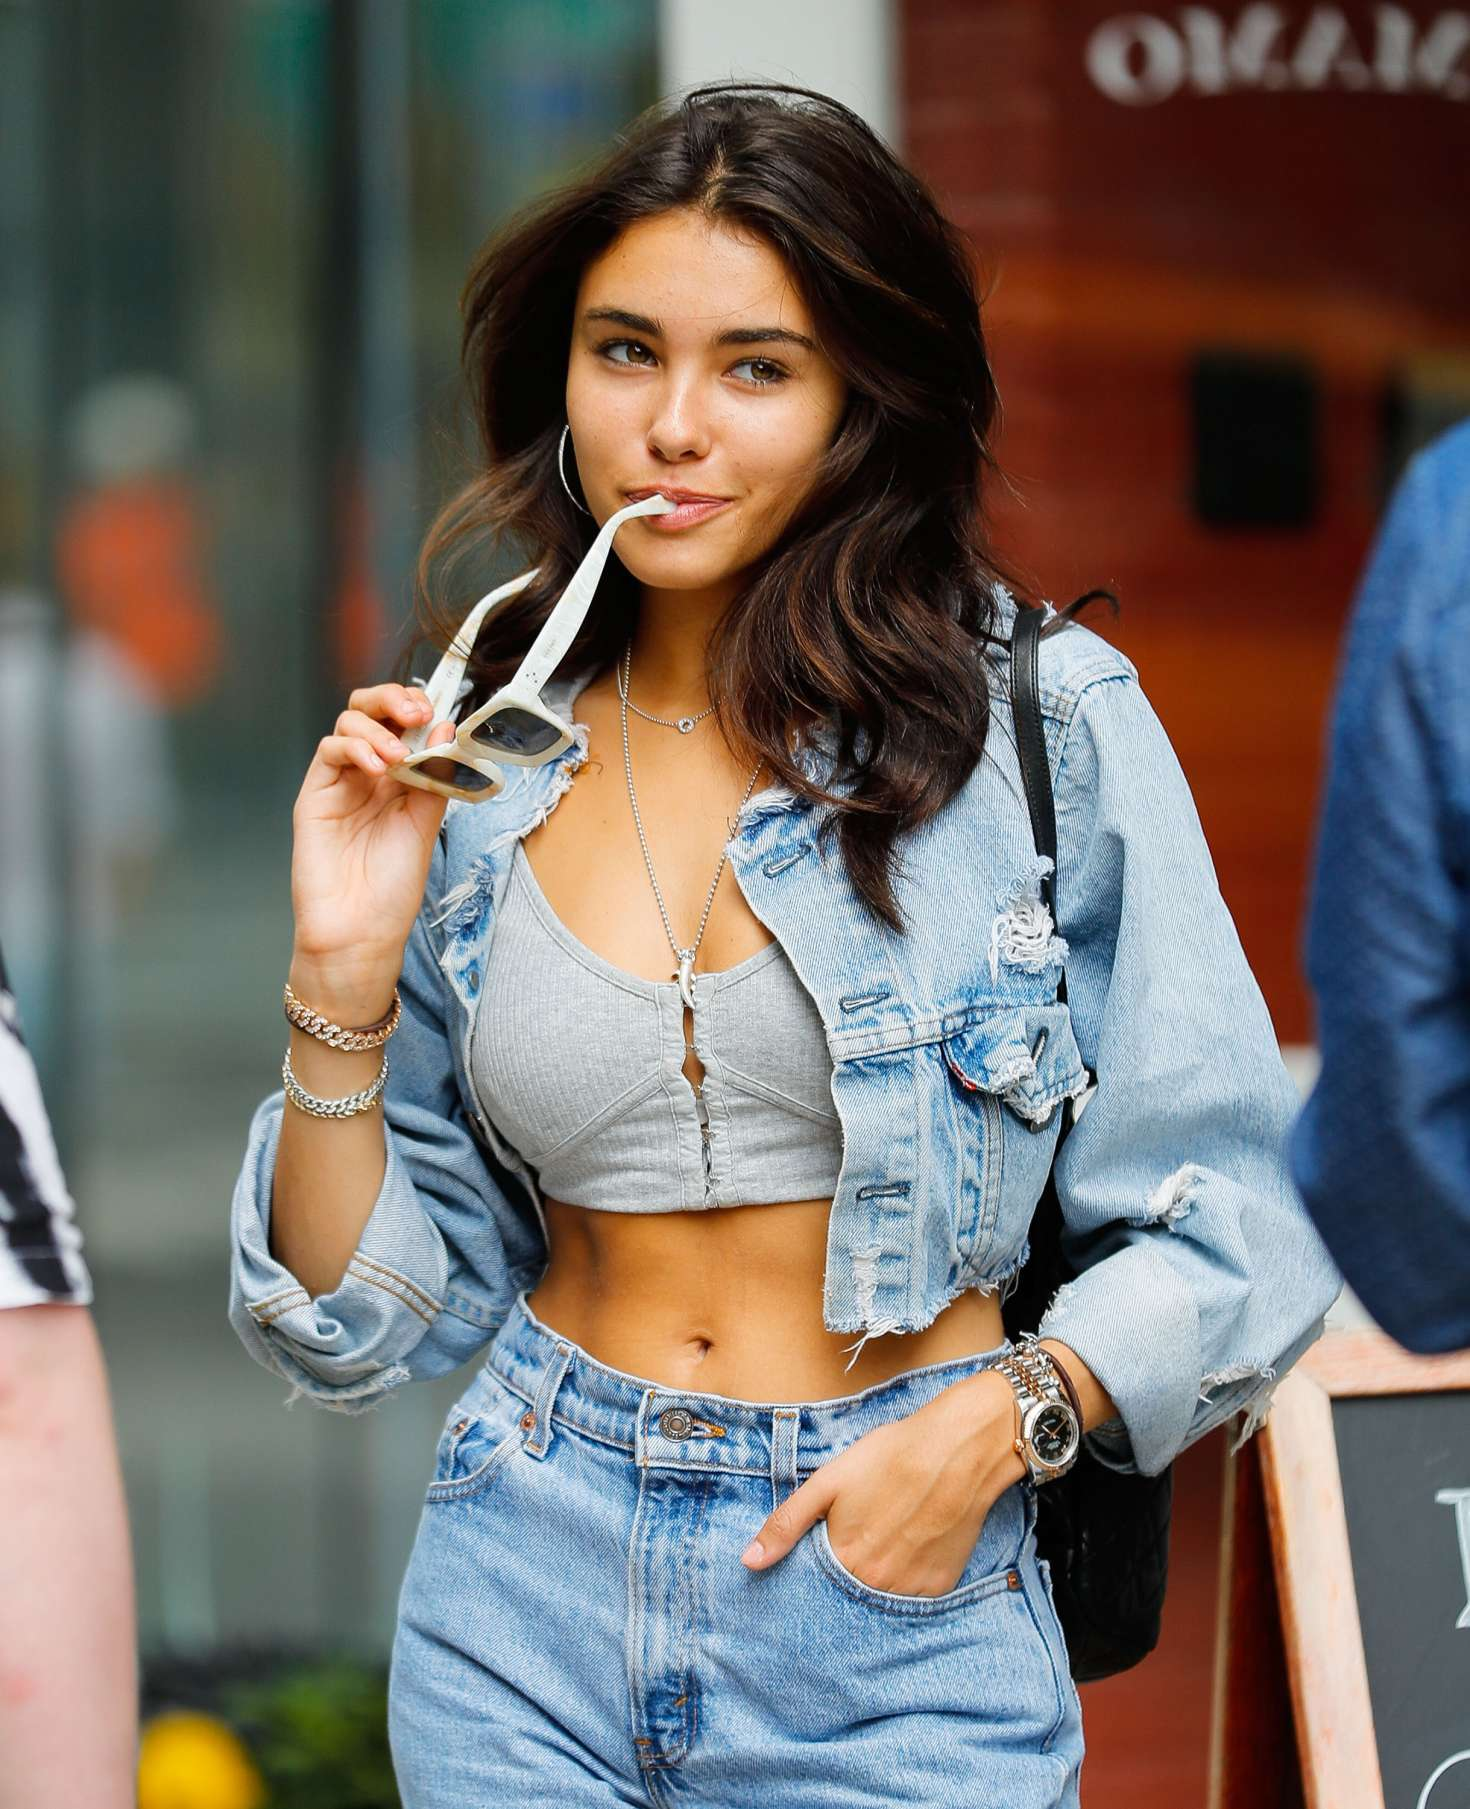 Madison Beer out for lunch in NYC